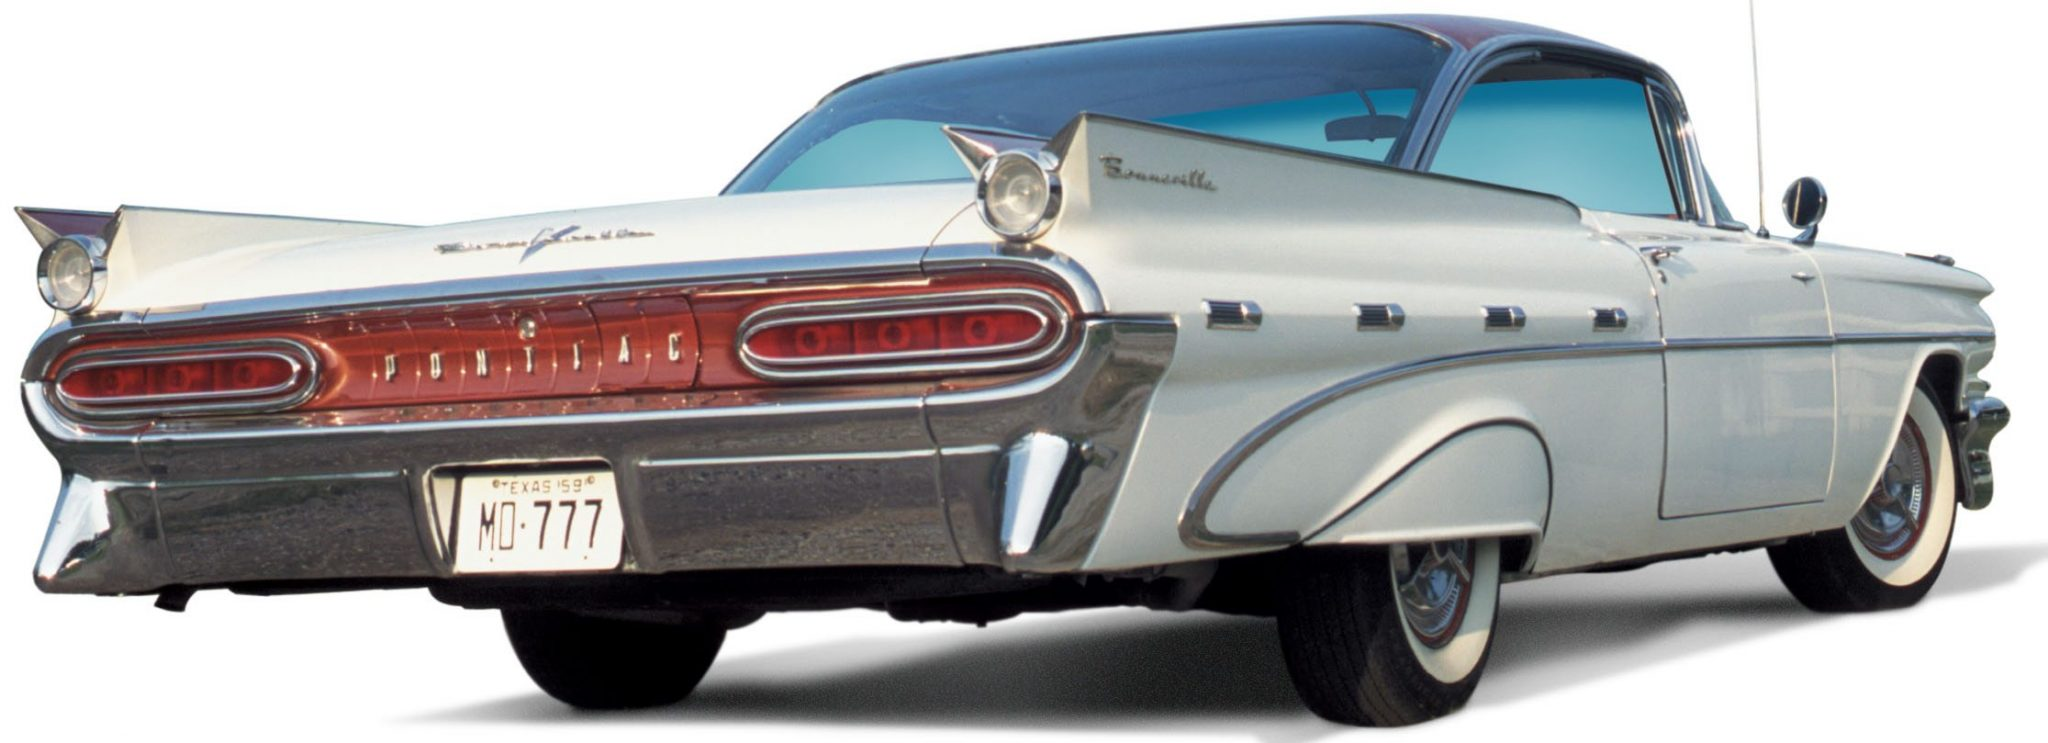 1959 Pontiac Bonneville Twin-Finned Quarters